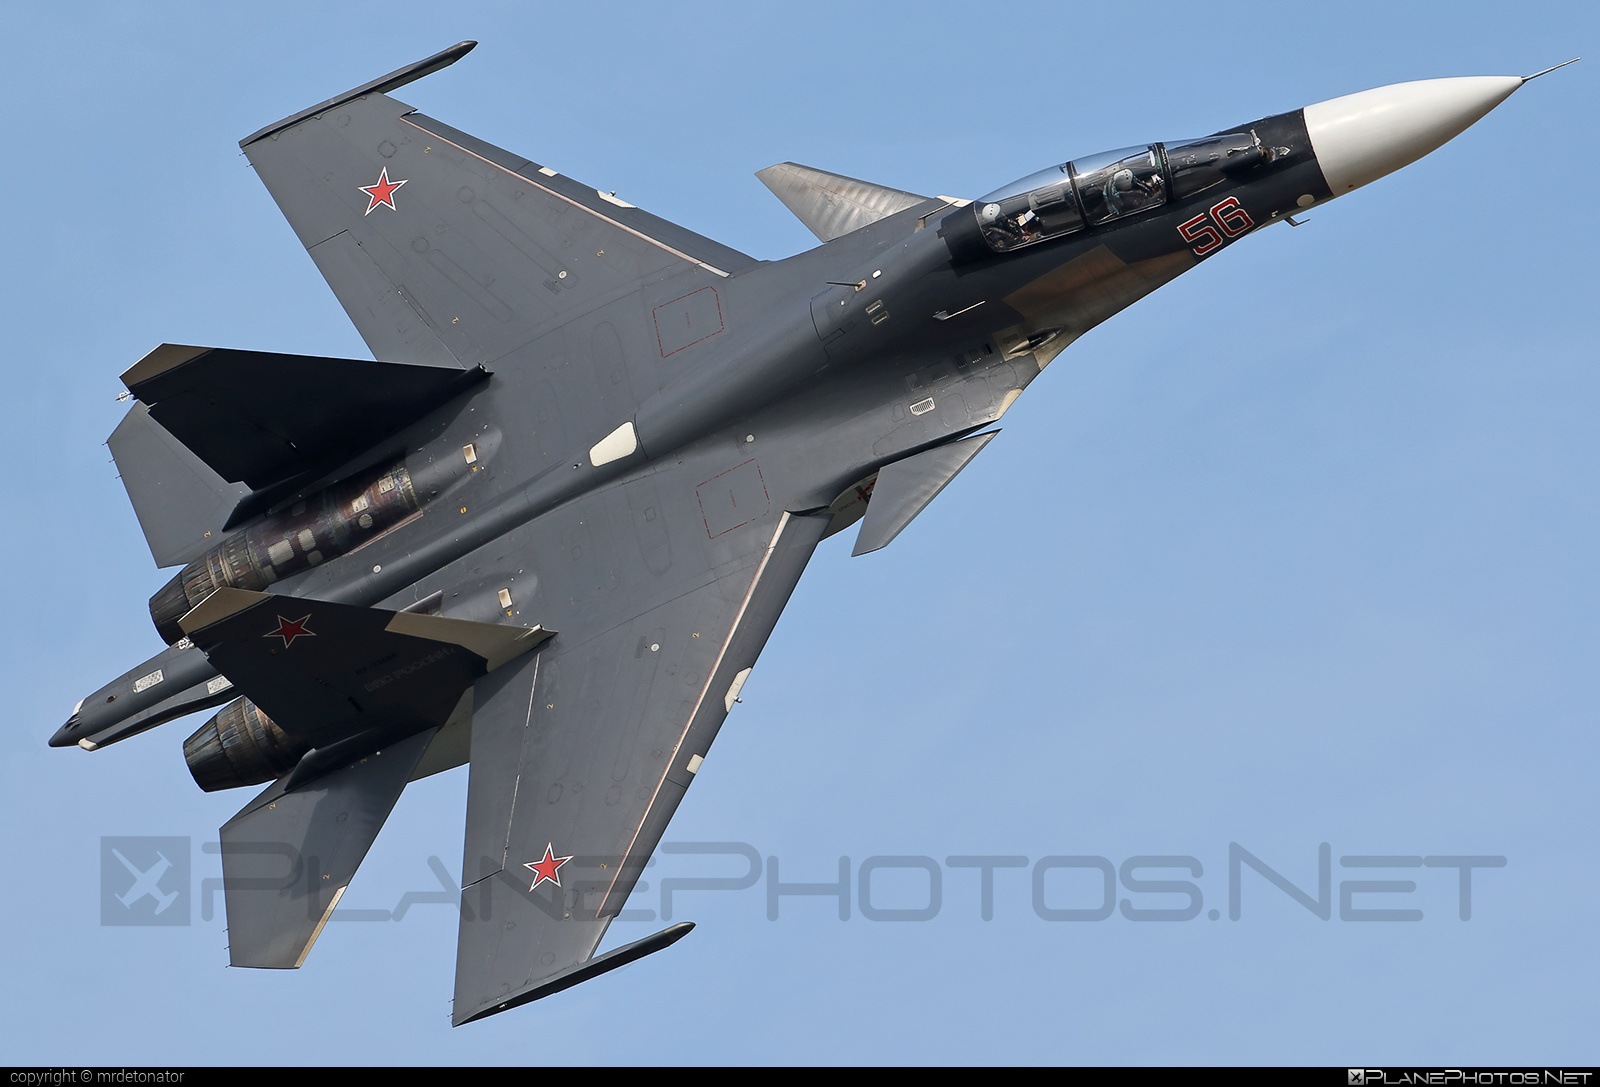 Sukhoi Su-30SM - 56 operated by Voyenno-vozdushnye sily Rossii (Russian Air Force) #maks2015 #sukhoi